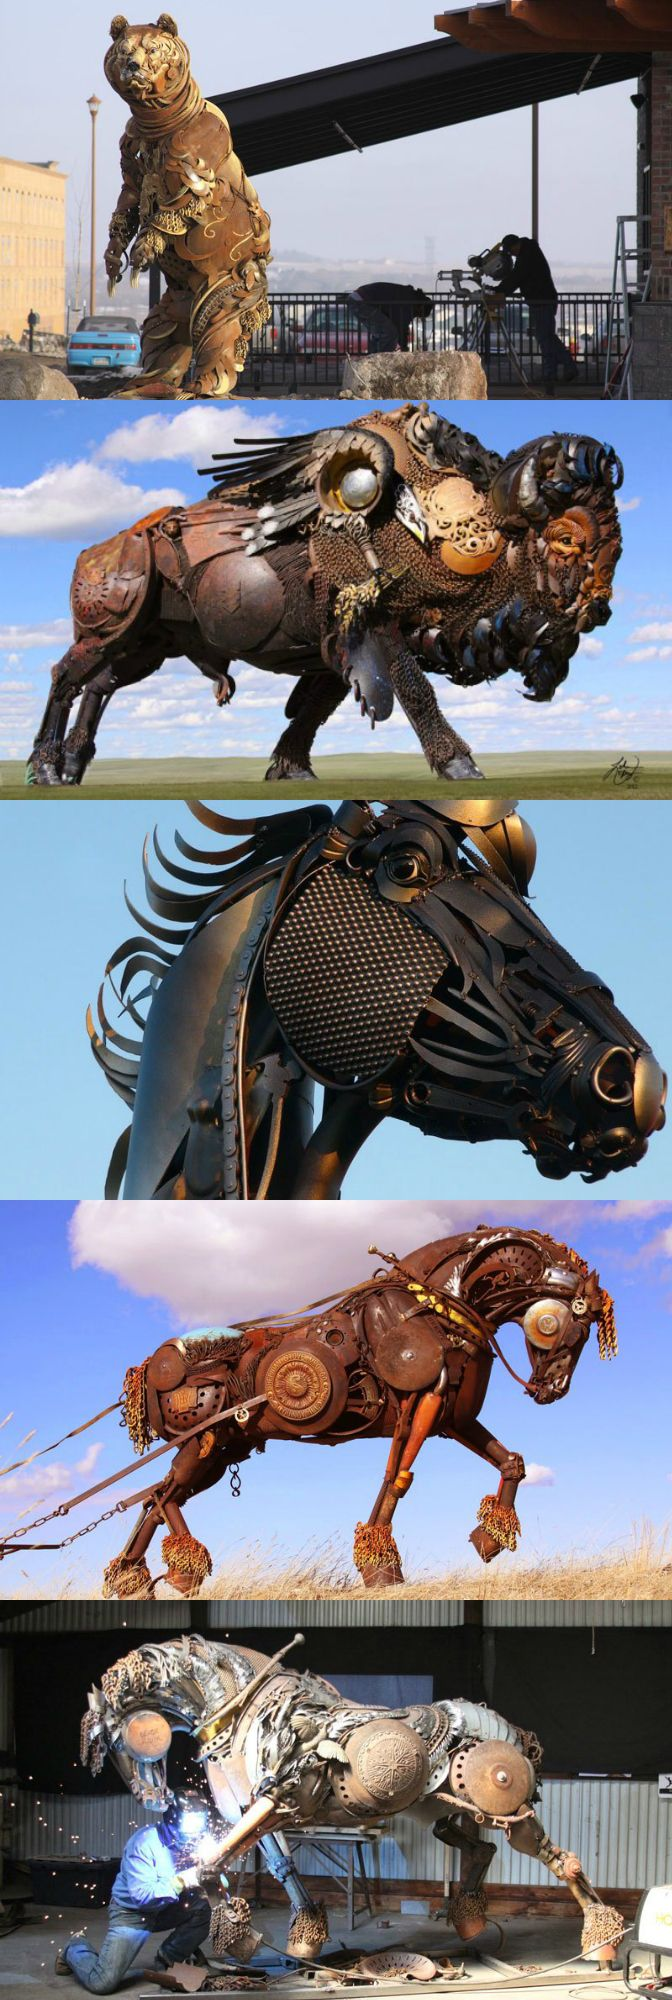 The Incredible Scrap Metal Animal #Sculptures of John Lopez